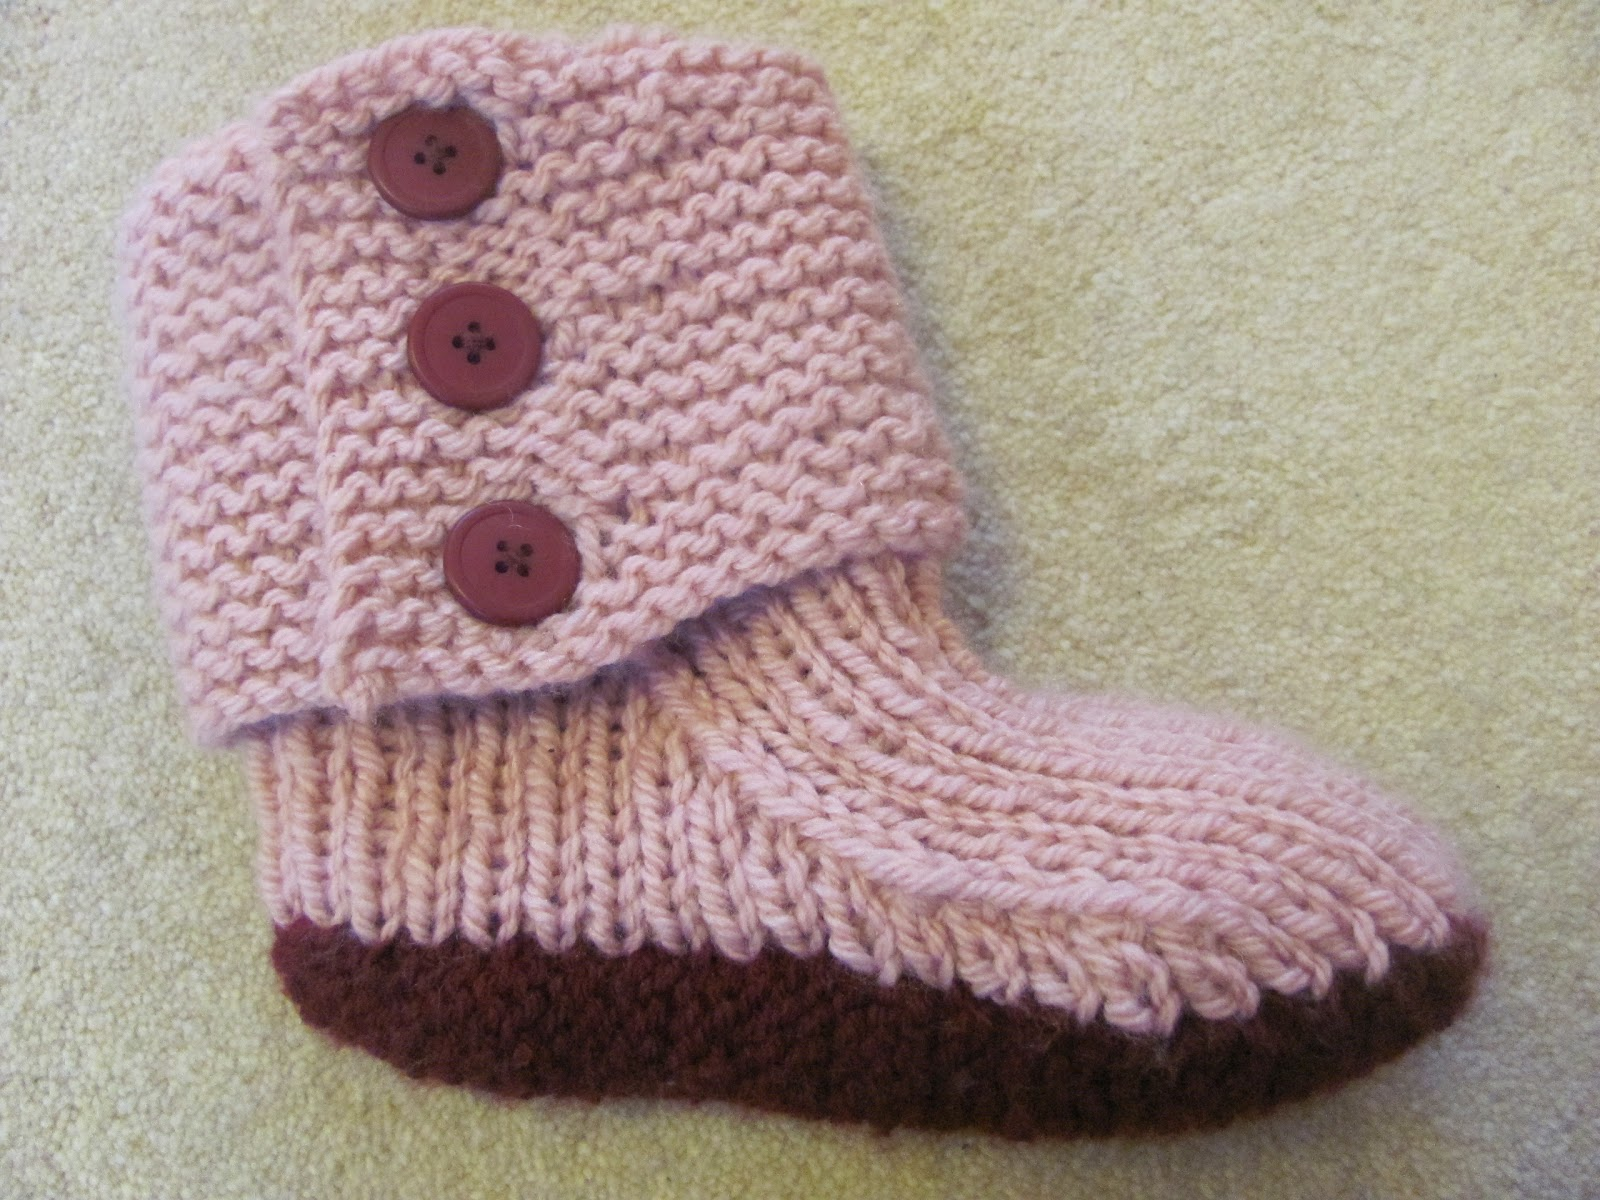 Patterns For Knitting Slippers : Slippers Pattern Knitting Patterns Gallery